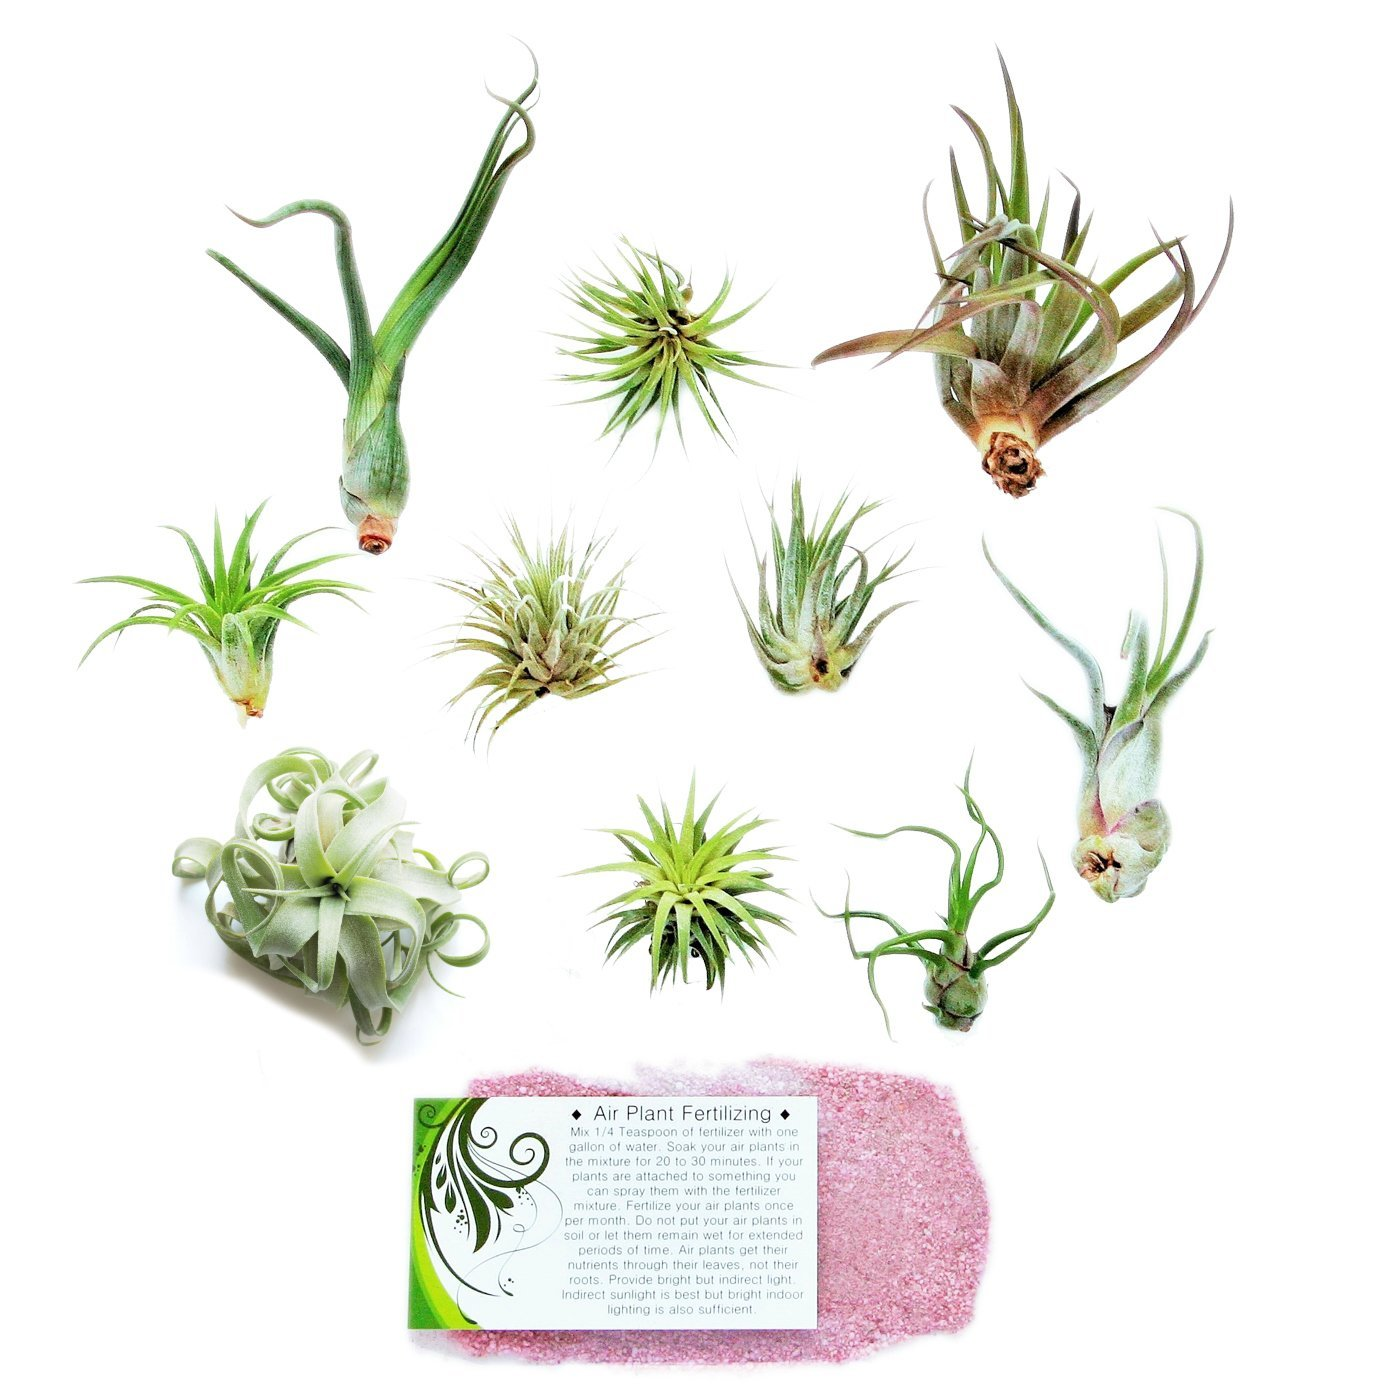 Air Plant Shop's Grab Bag of 10 Plants + Fertilizer Packet - Free PDF Air Plant Care eBook with Every Order - House Plants - Air Plant Variety - Fast Shipping from Florida by The Air Plant Shop